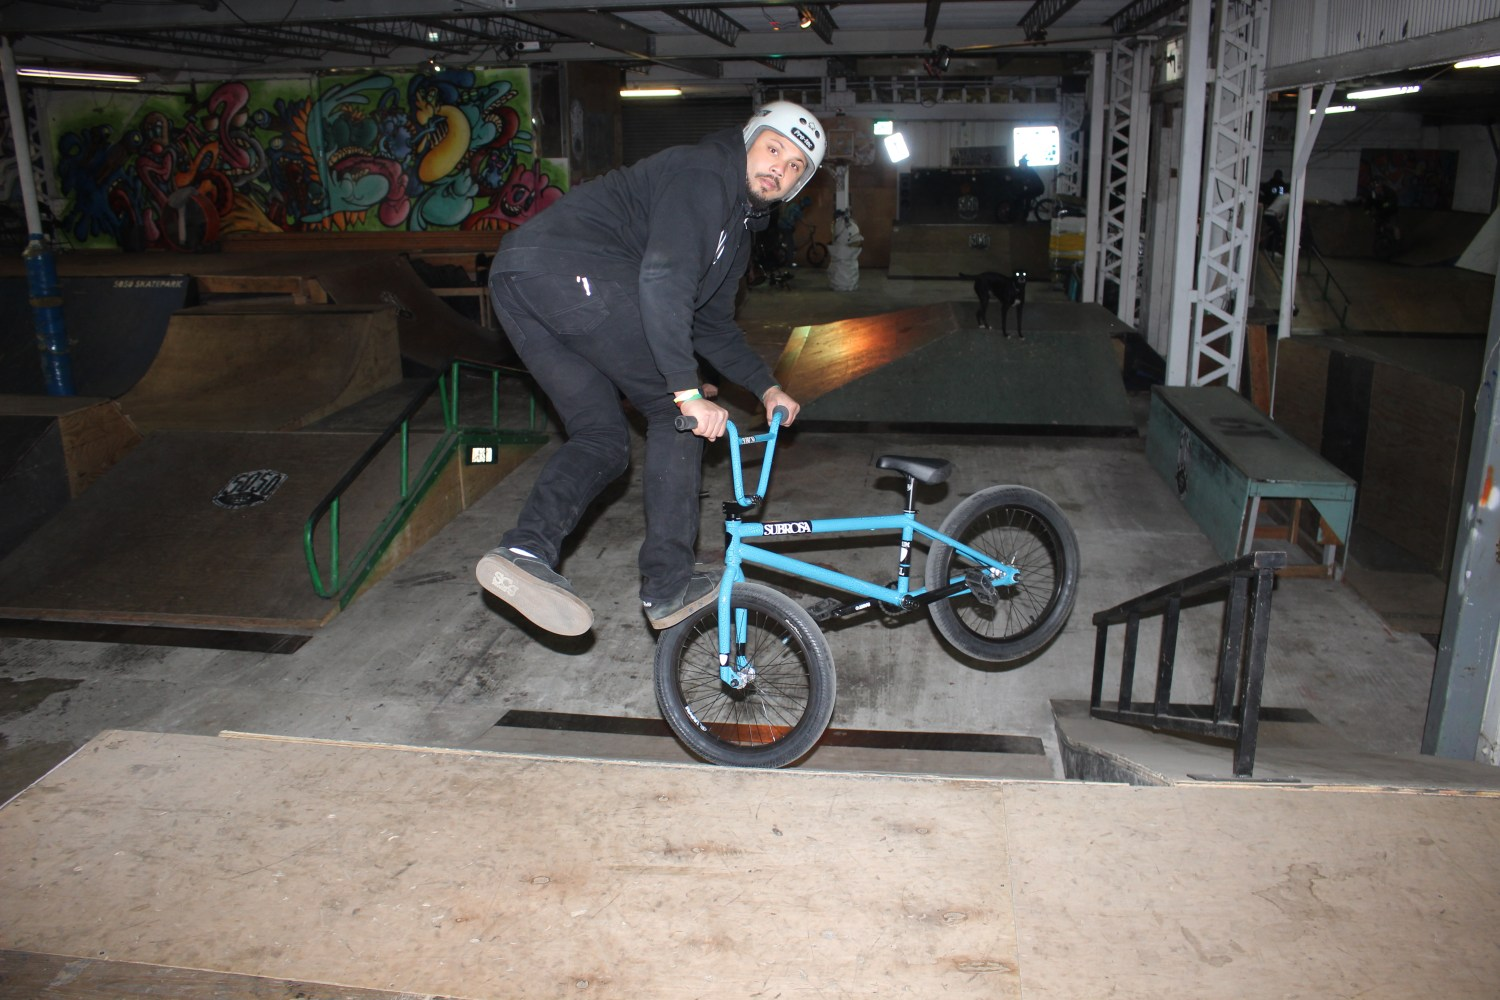 Walt From District Bike Shop in Wasington DC came to Staten Island to Footjam Whip at King of New York